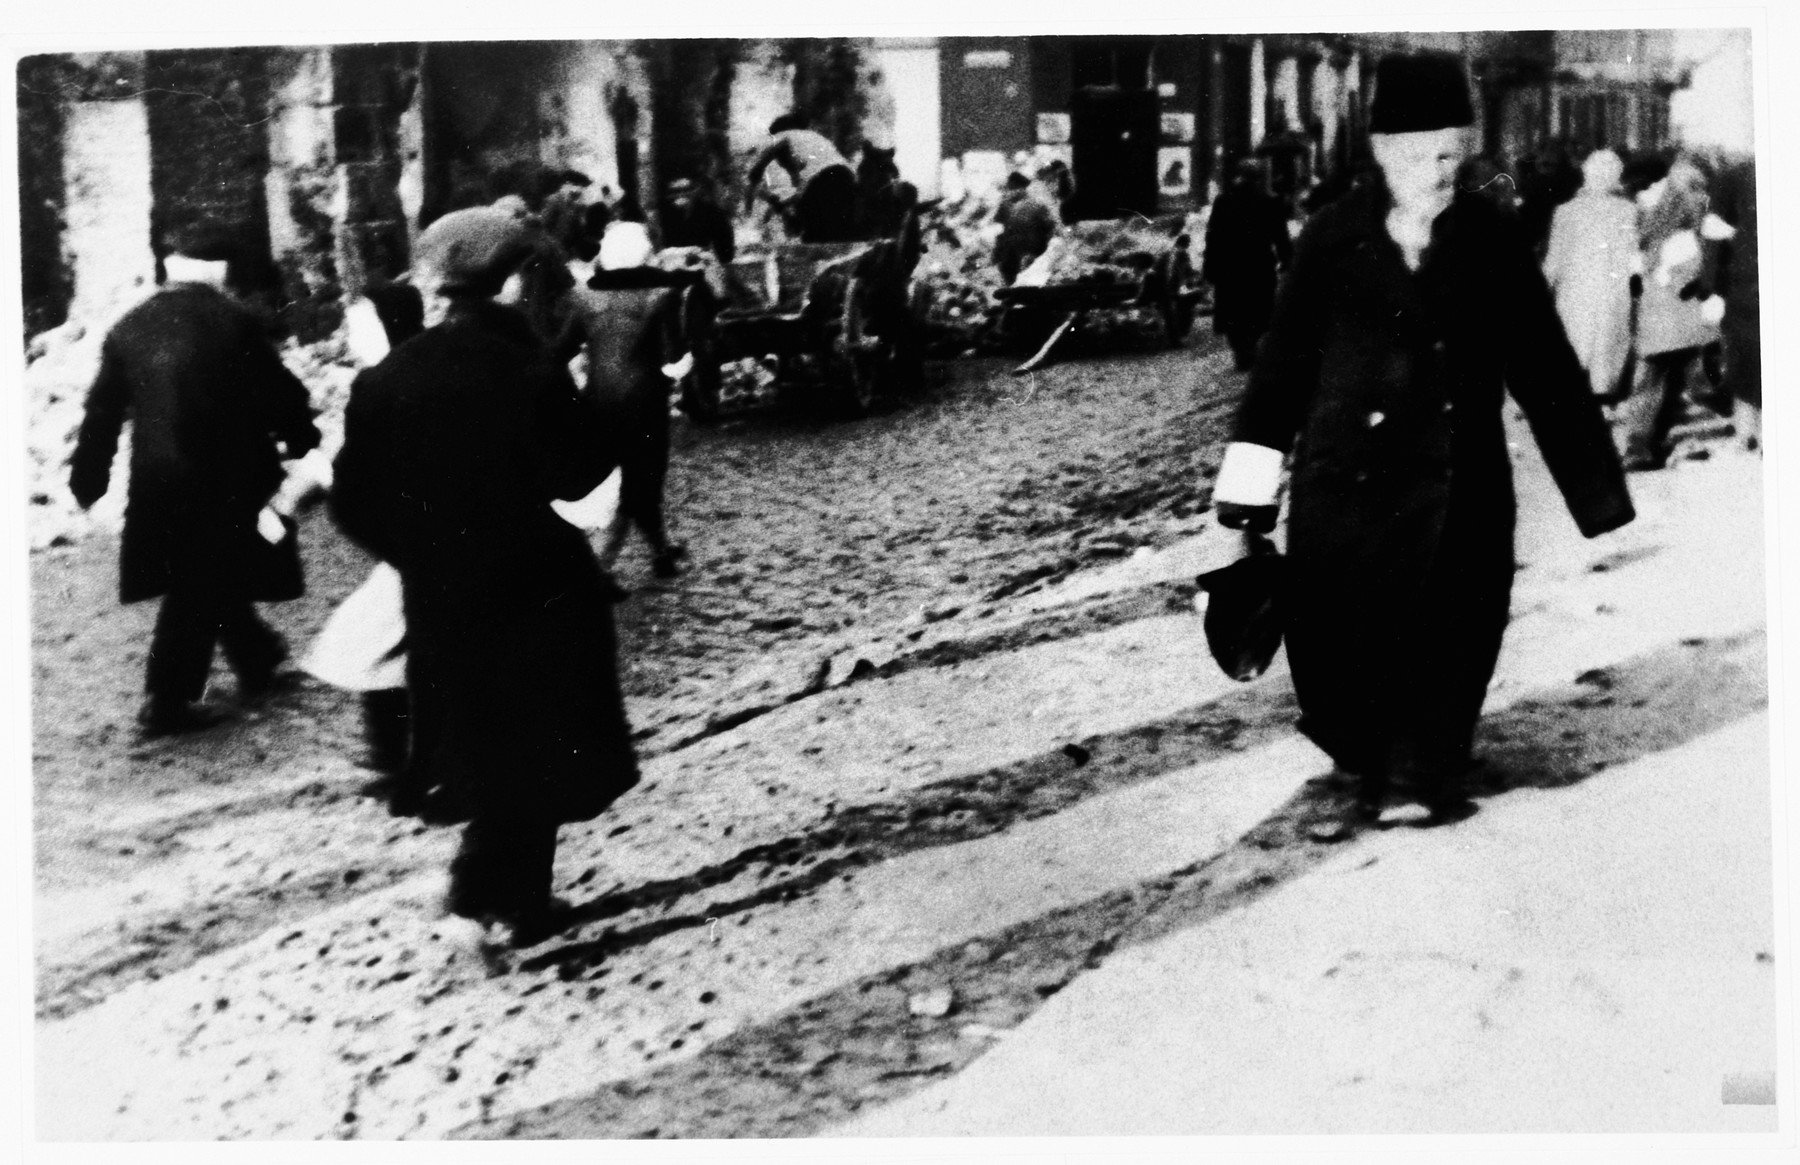 Jews wearing armbands walk along an unpaved street in an unidentified ghetto.